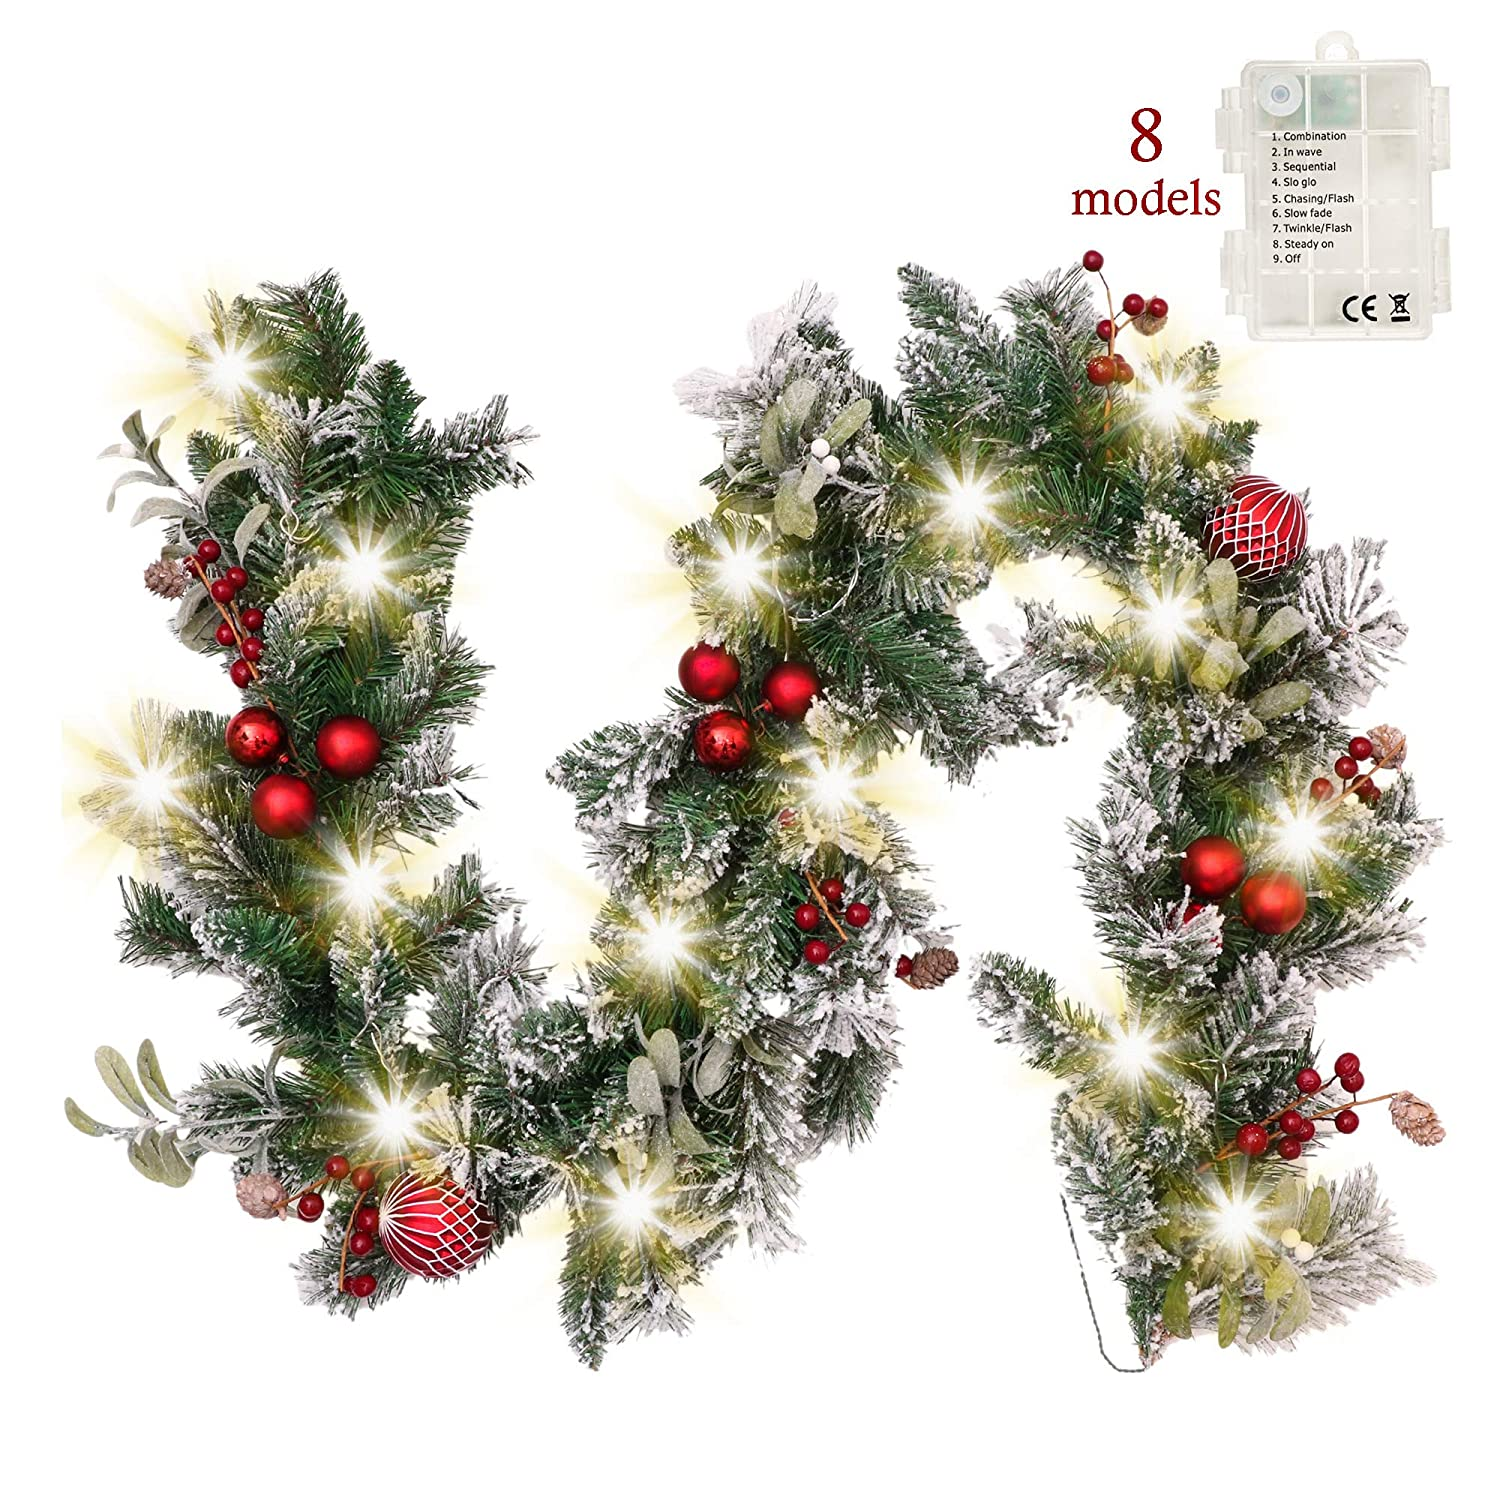 Berry Battery Operated Artificial Flower Valery Madelyn Pre-Lit Luxury Red and Gold Christmas Garland with Remote Timer 8 Modes 20 LED Lights Decorated with Glittery Baubles 1.8m// 6 feet Ribbon